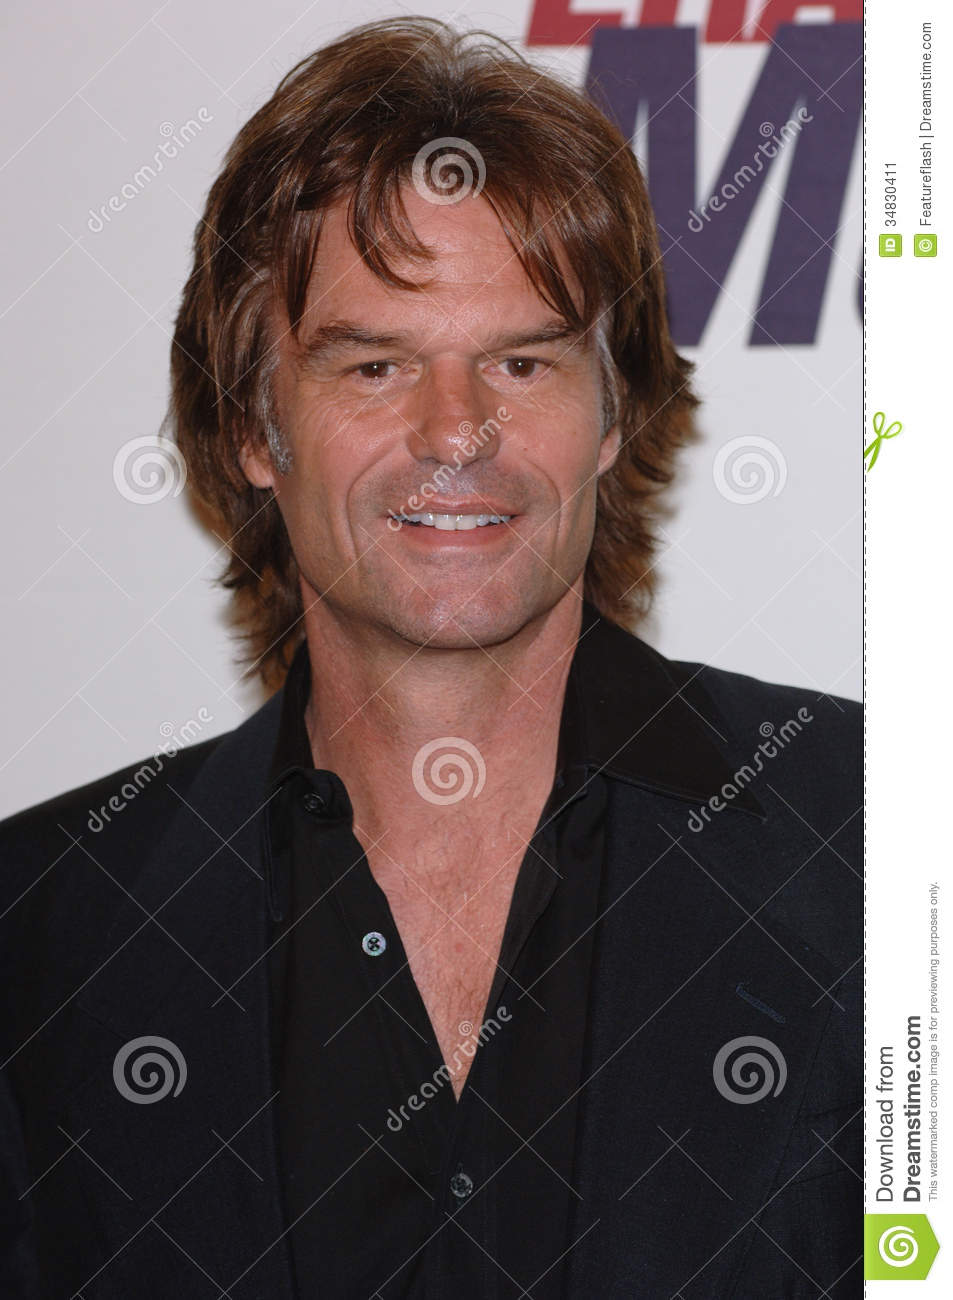 harry hamlin wiki